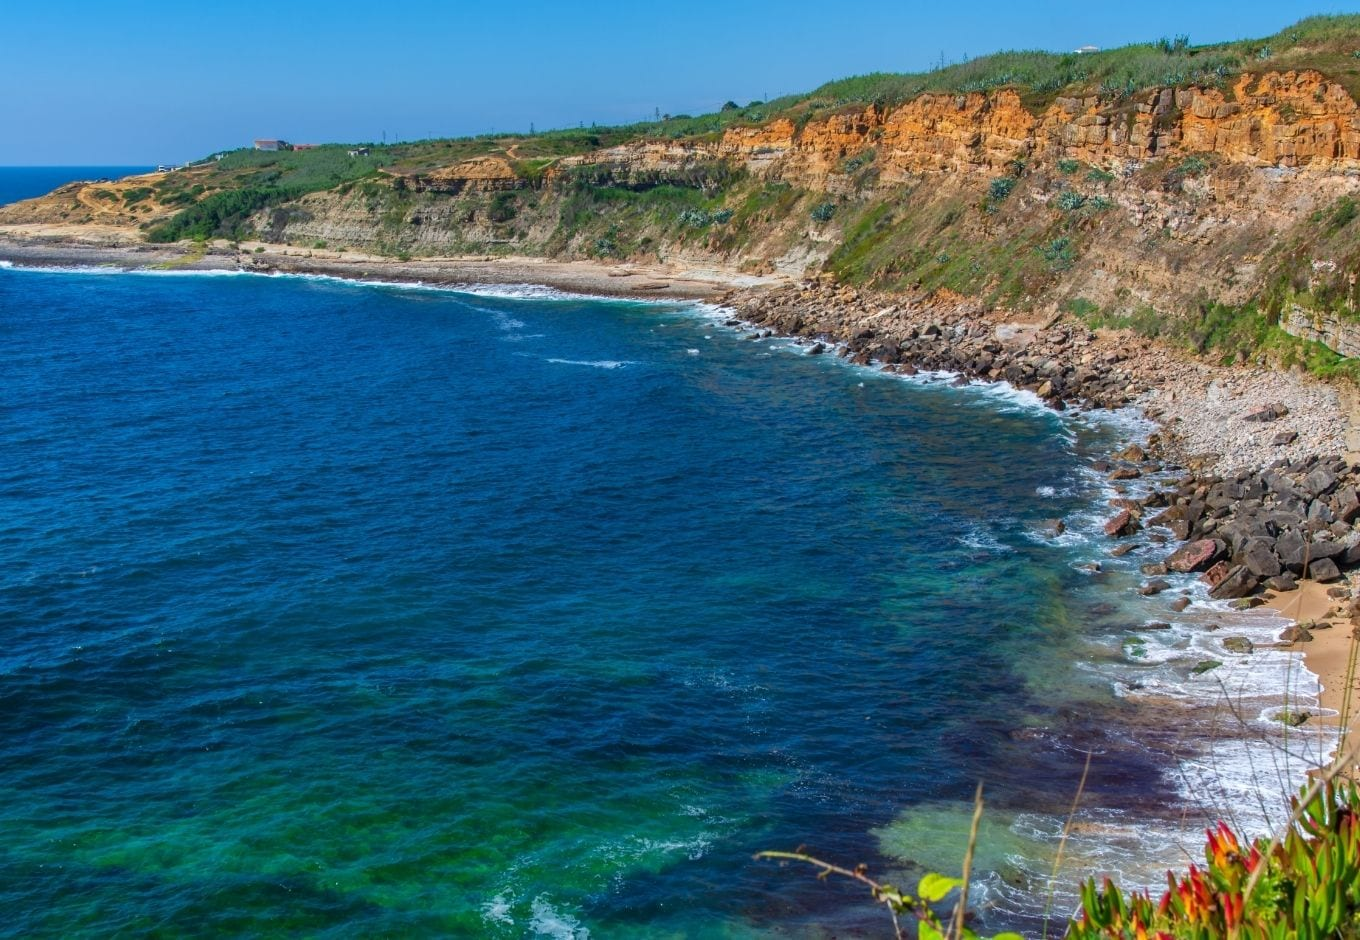 Aerial view of the ocean surrounded by a cliff in Ericeira beach, Portugal.